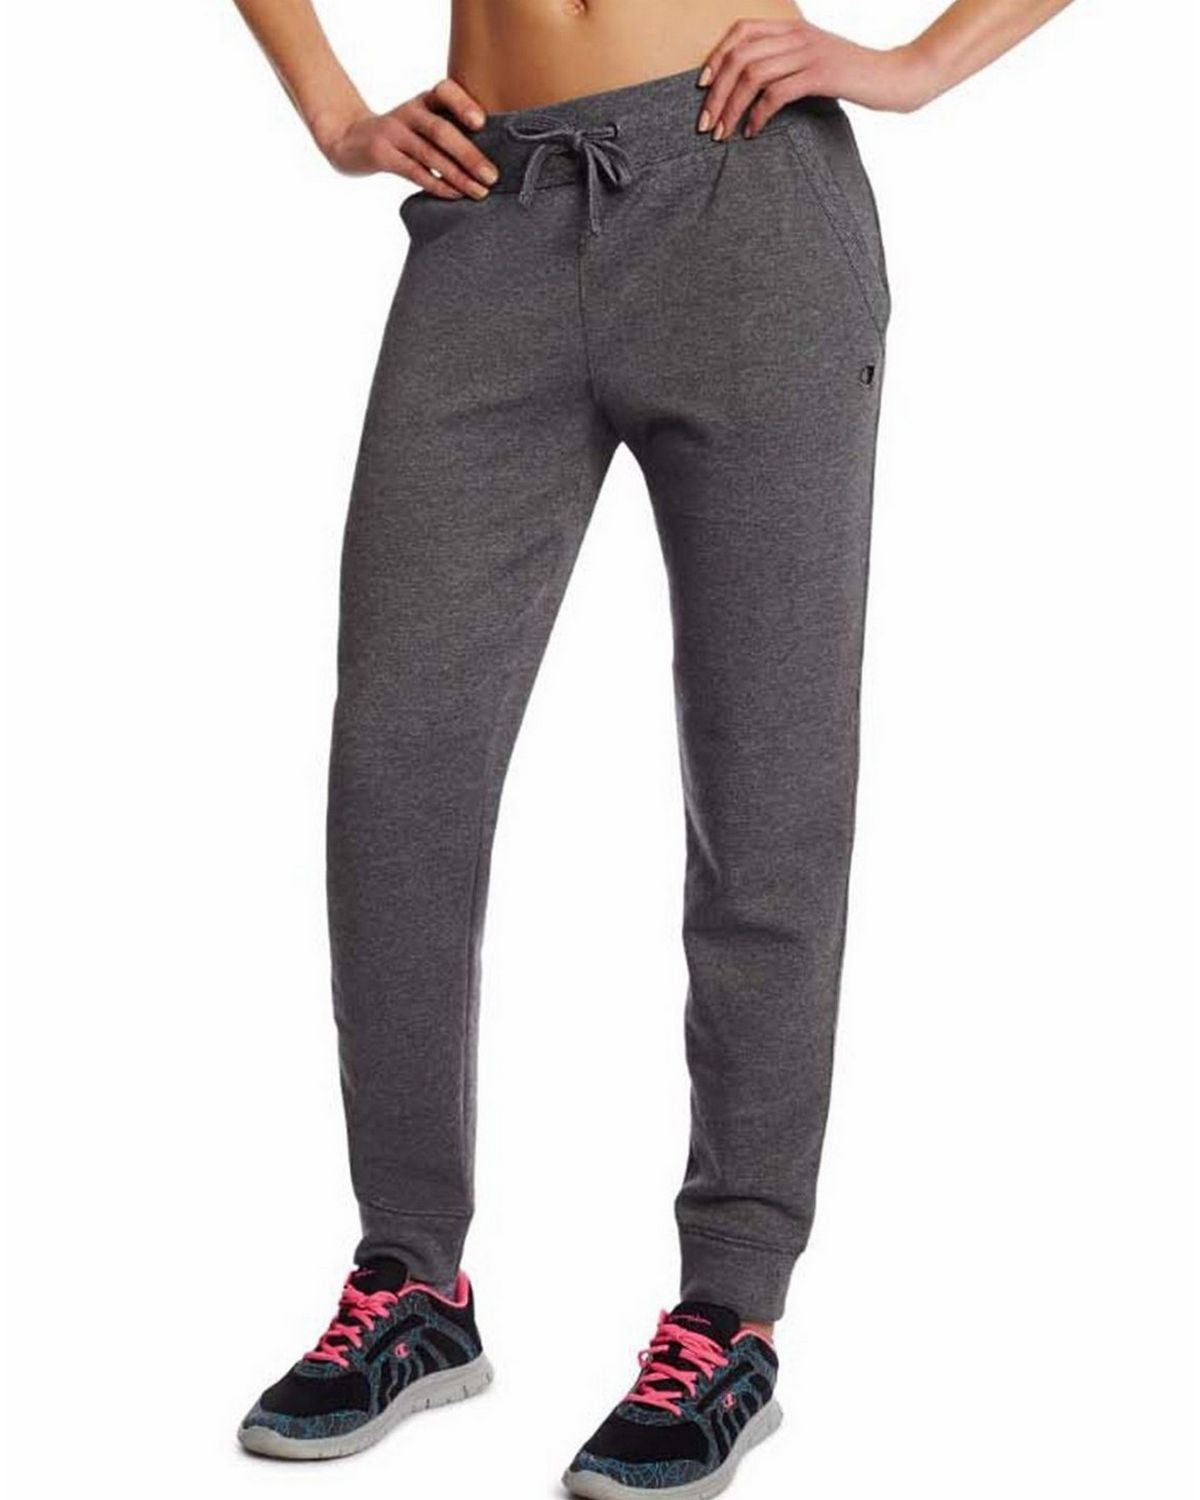 Champion M0937 Womens Fleece Jogger Pants - Granite Heather - L M0937